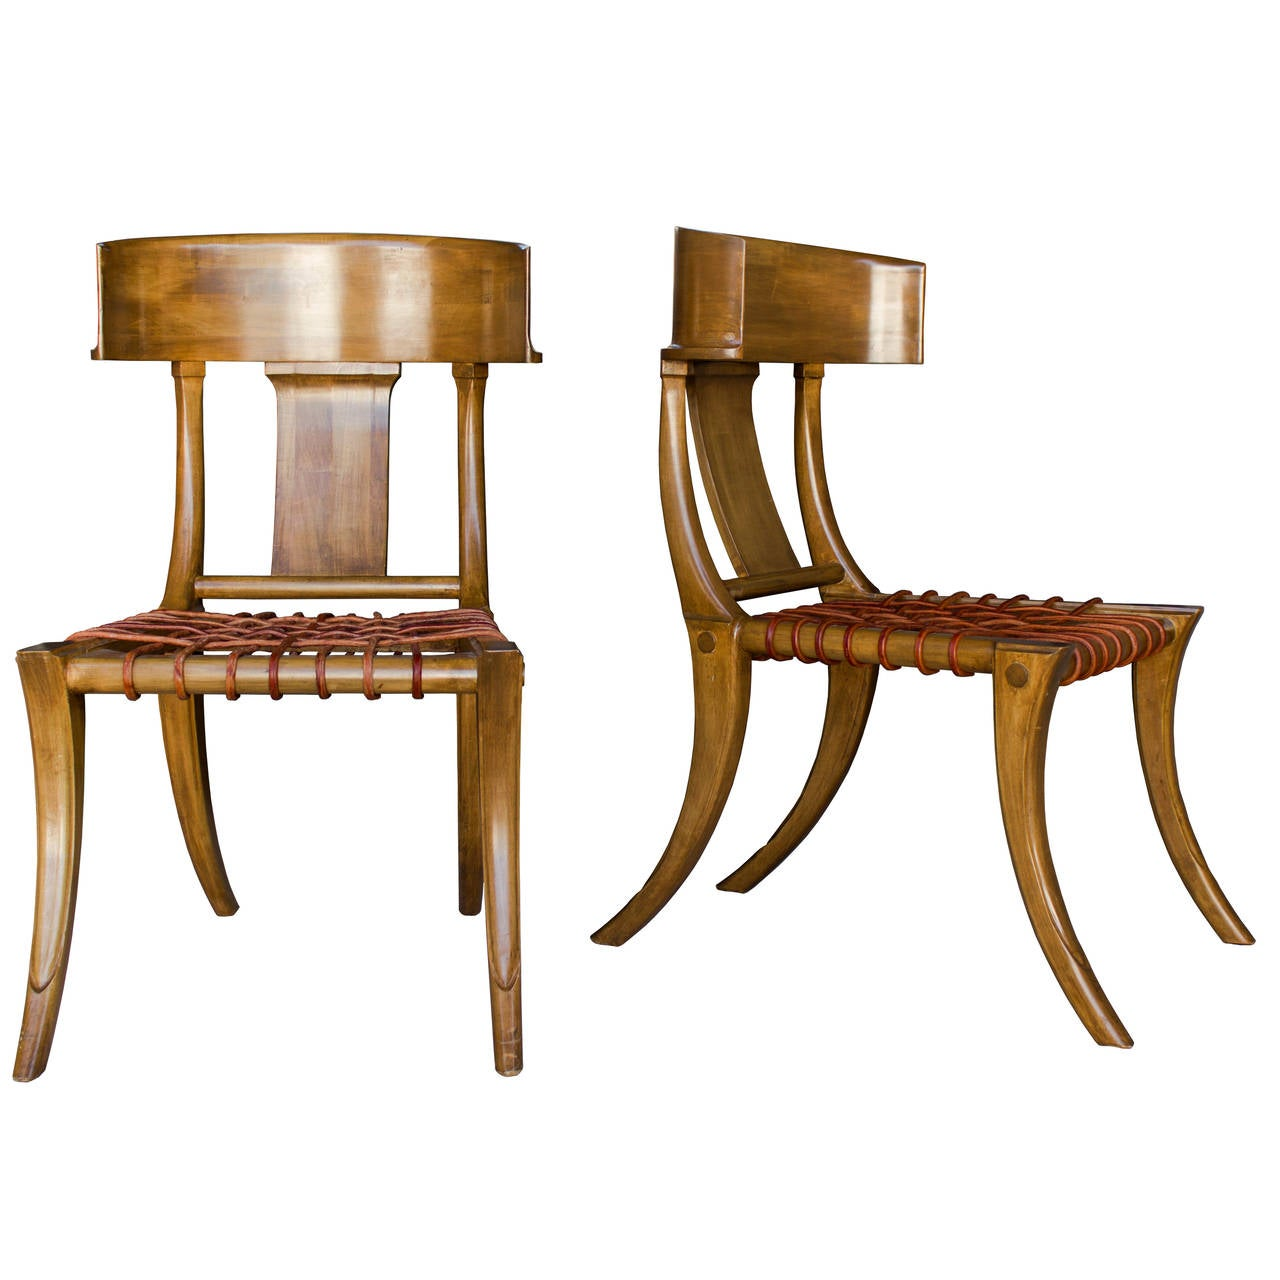 Klismos chair drawing - Handsome Pair Of Klismos Chairs By Kreiss 1